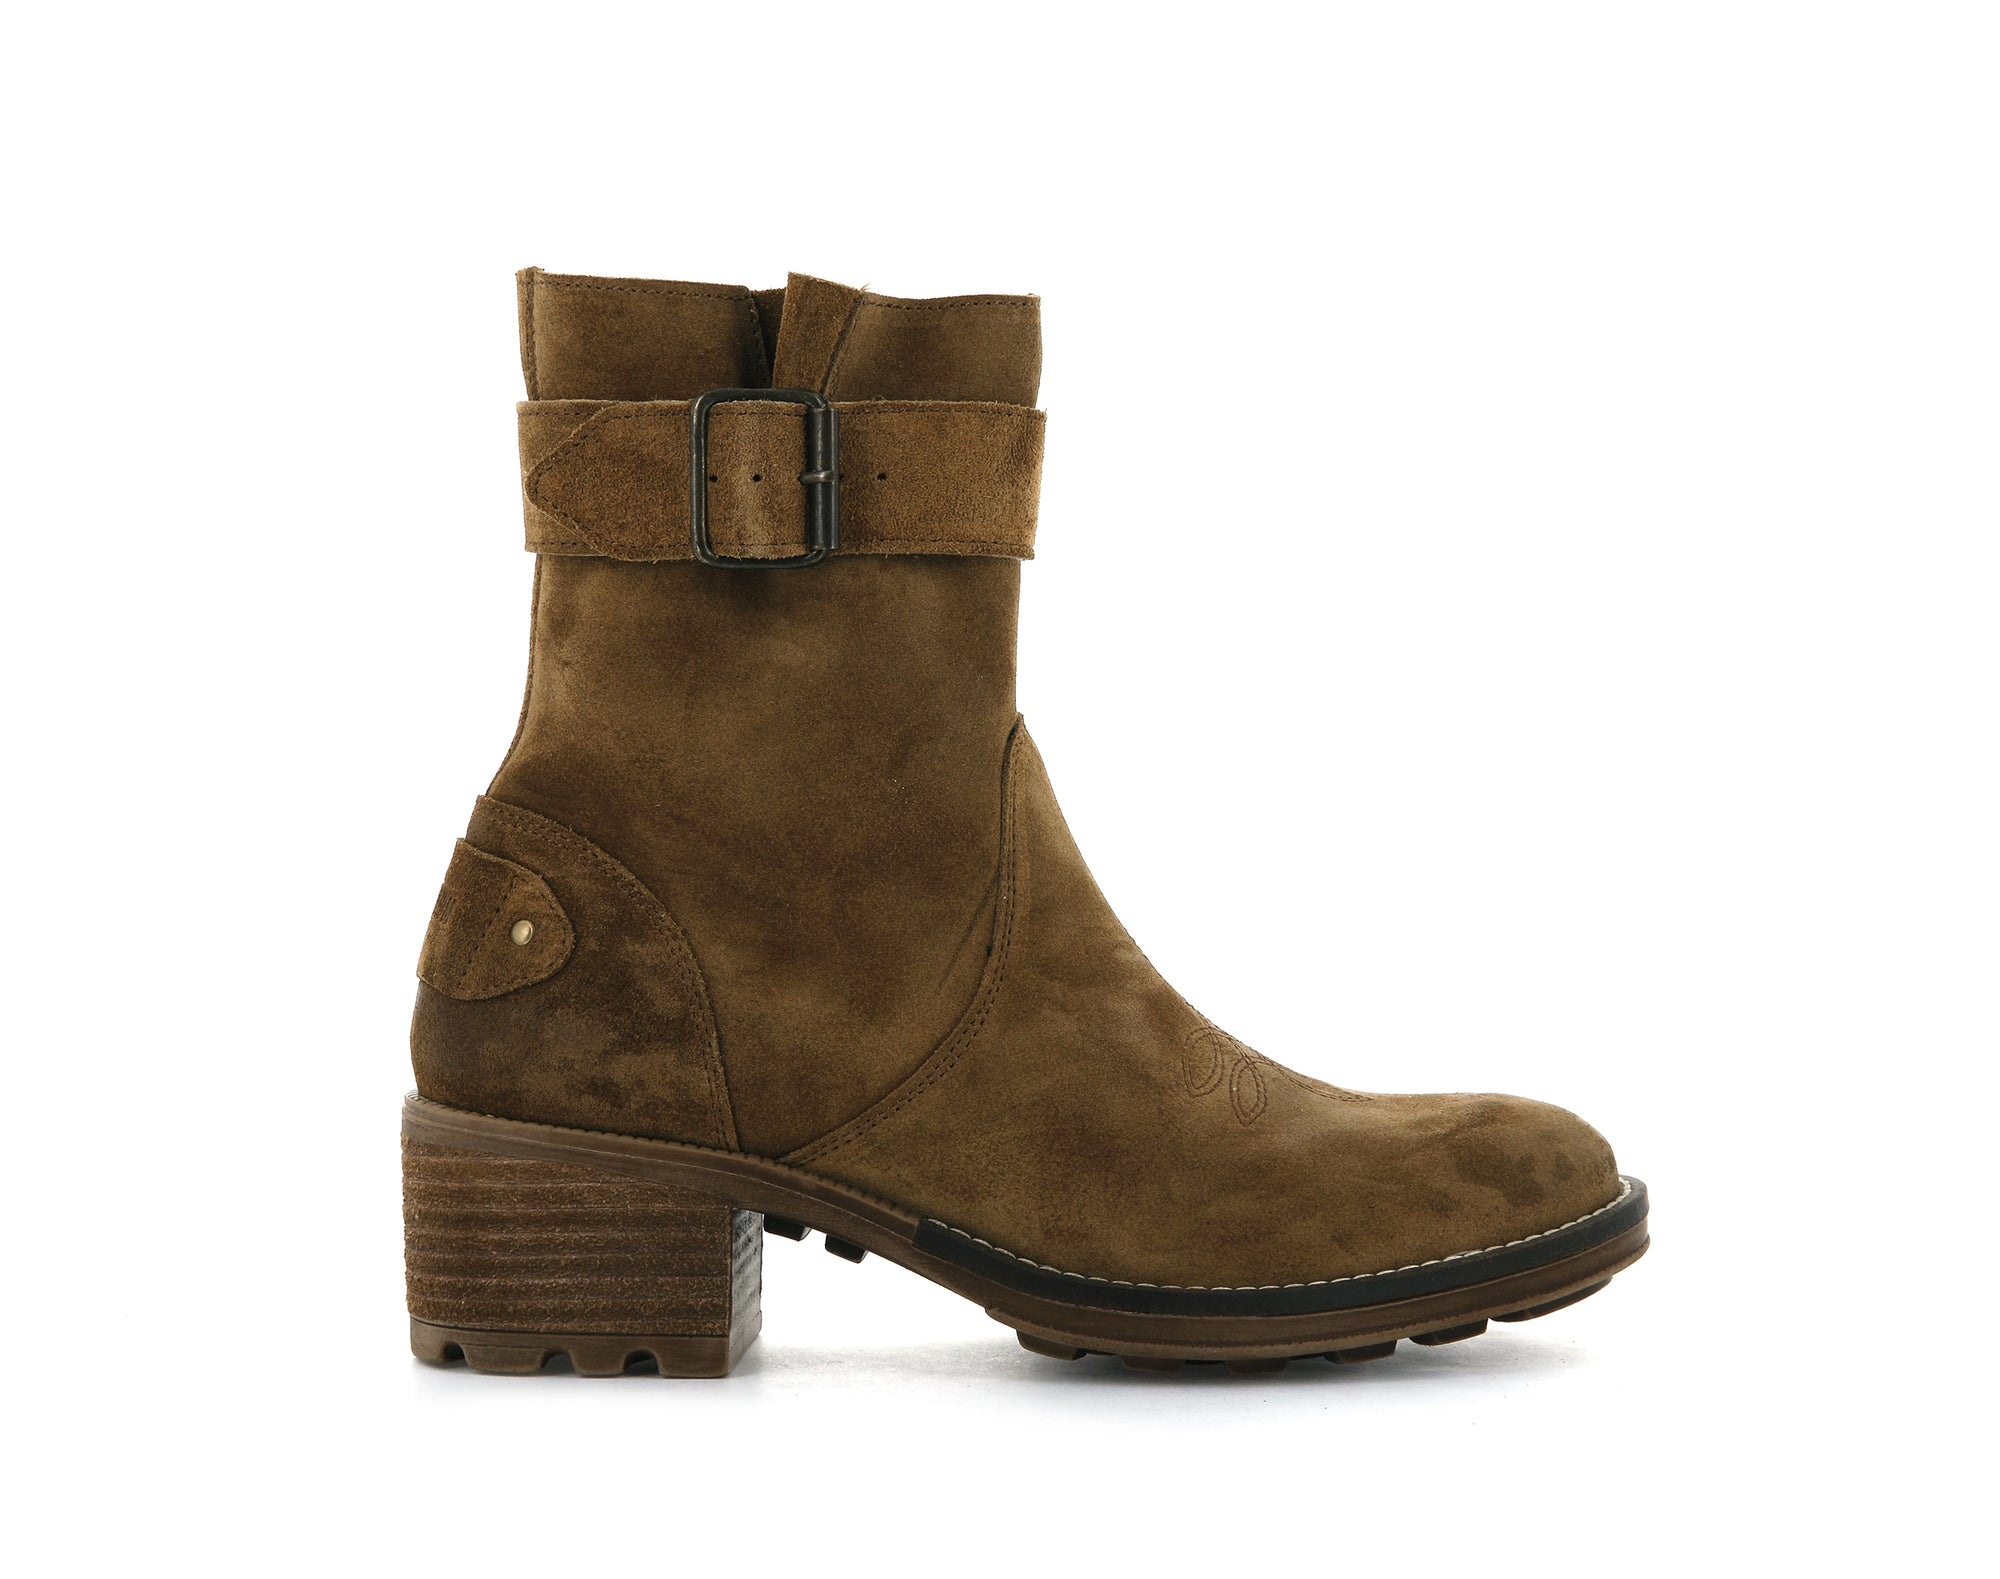 76788_028 | Boots Femme MARGO 04 SUD | CAMEL